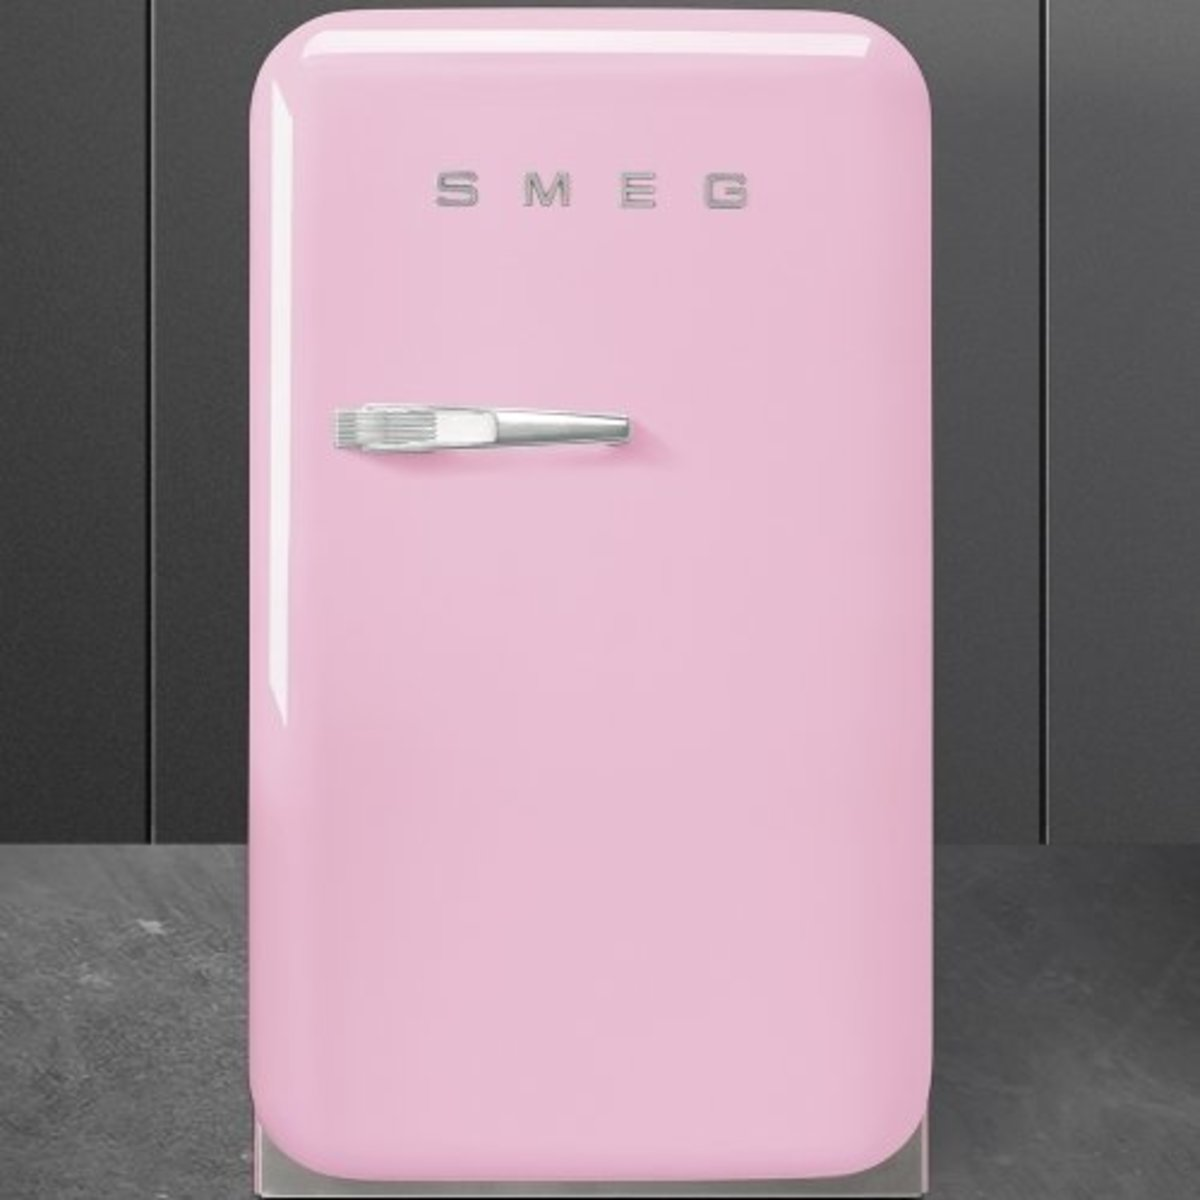 50's style minibar cooler,31L, Pink ,FAB5RPK [Not require any removal service] (Pre-order)